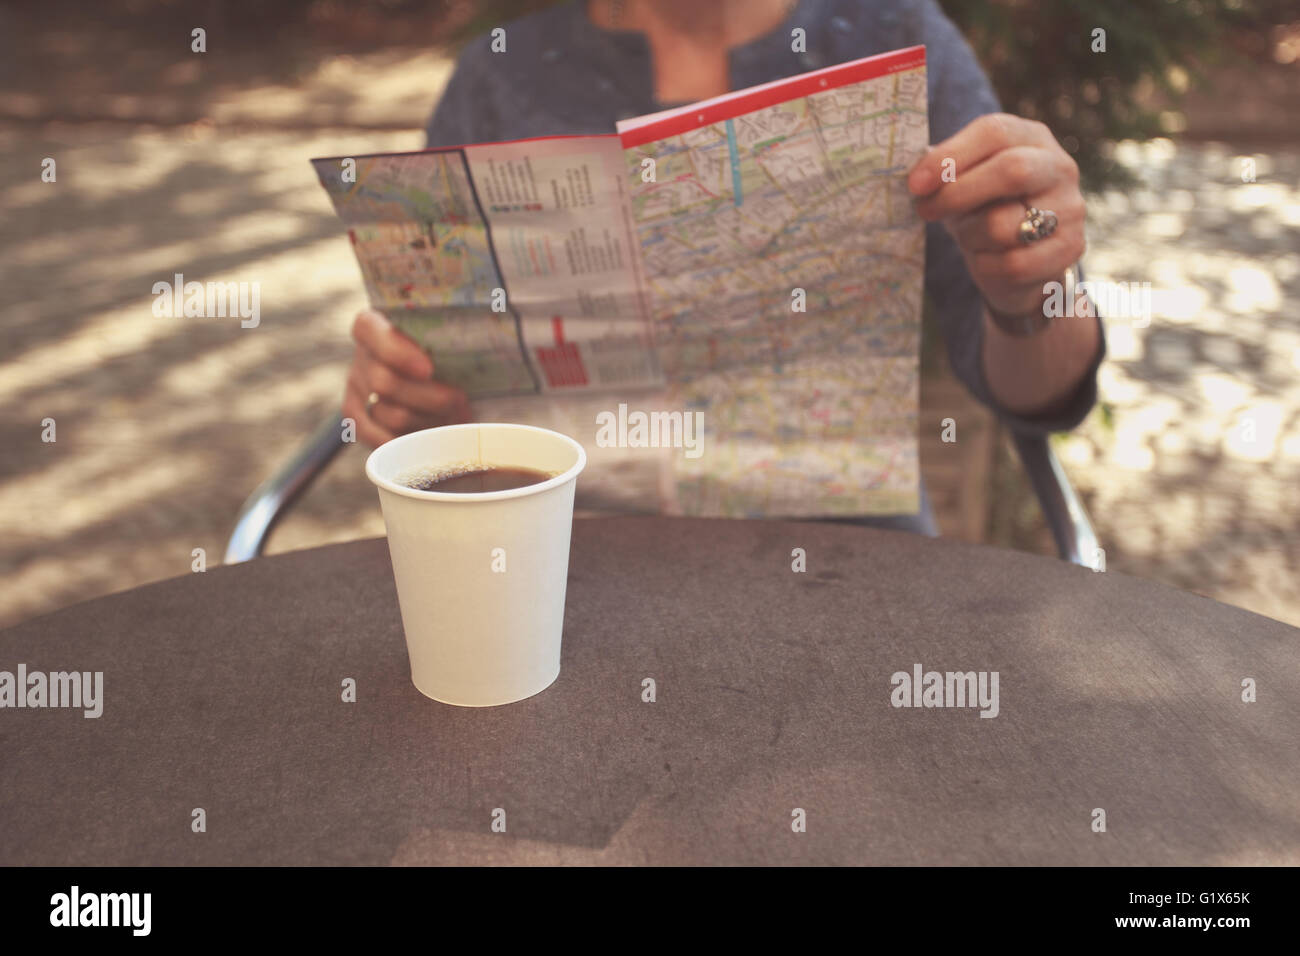 An elderly woman is sitting outside on a sunny day and is studying a city map whilst having coffee - Stock Image